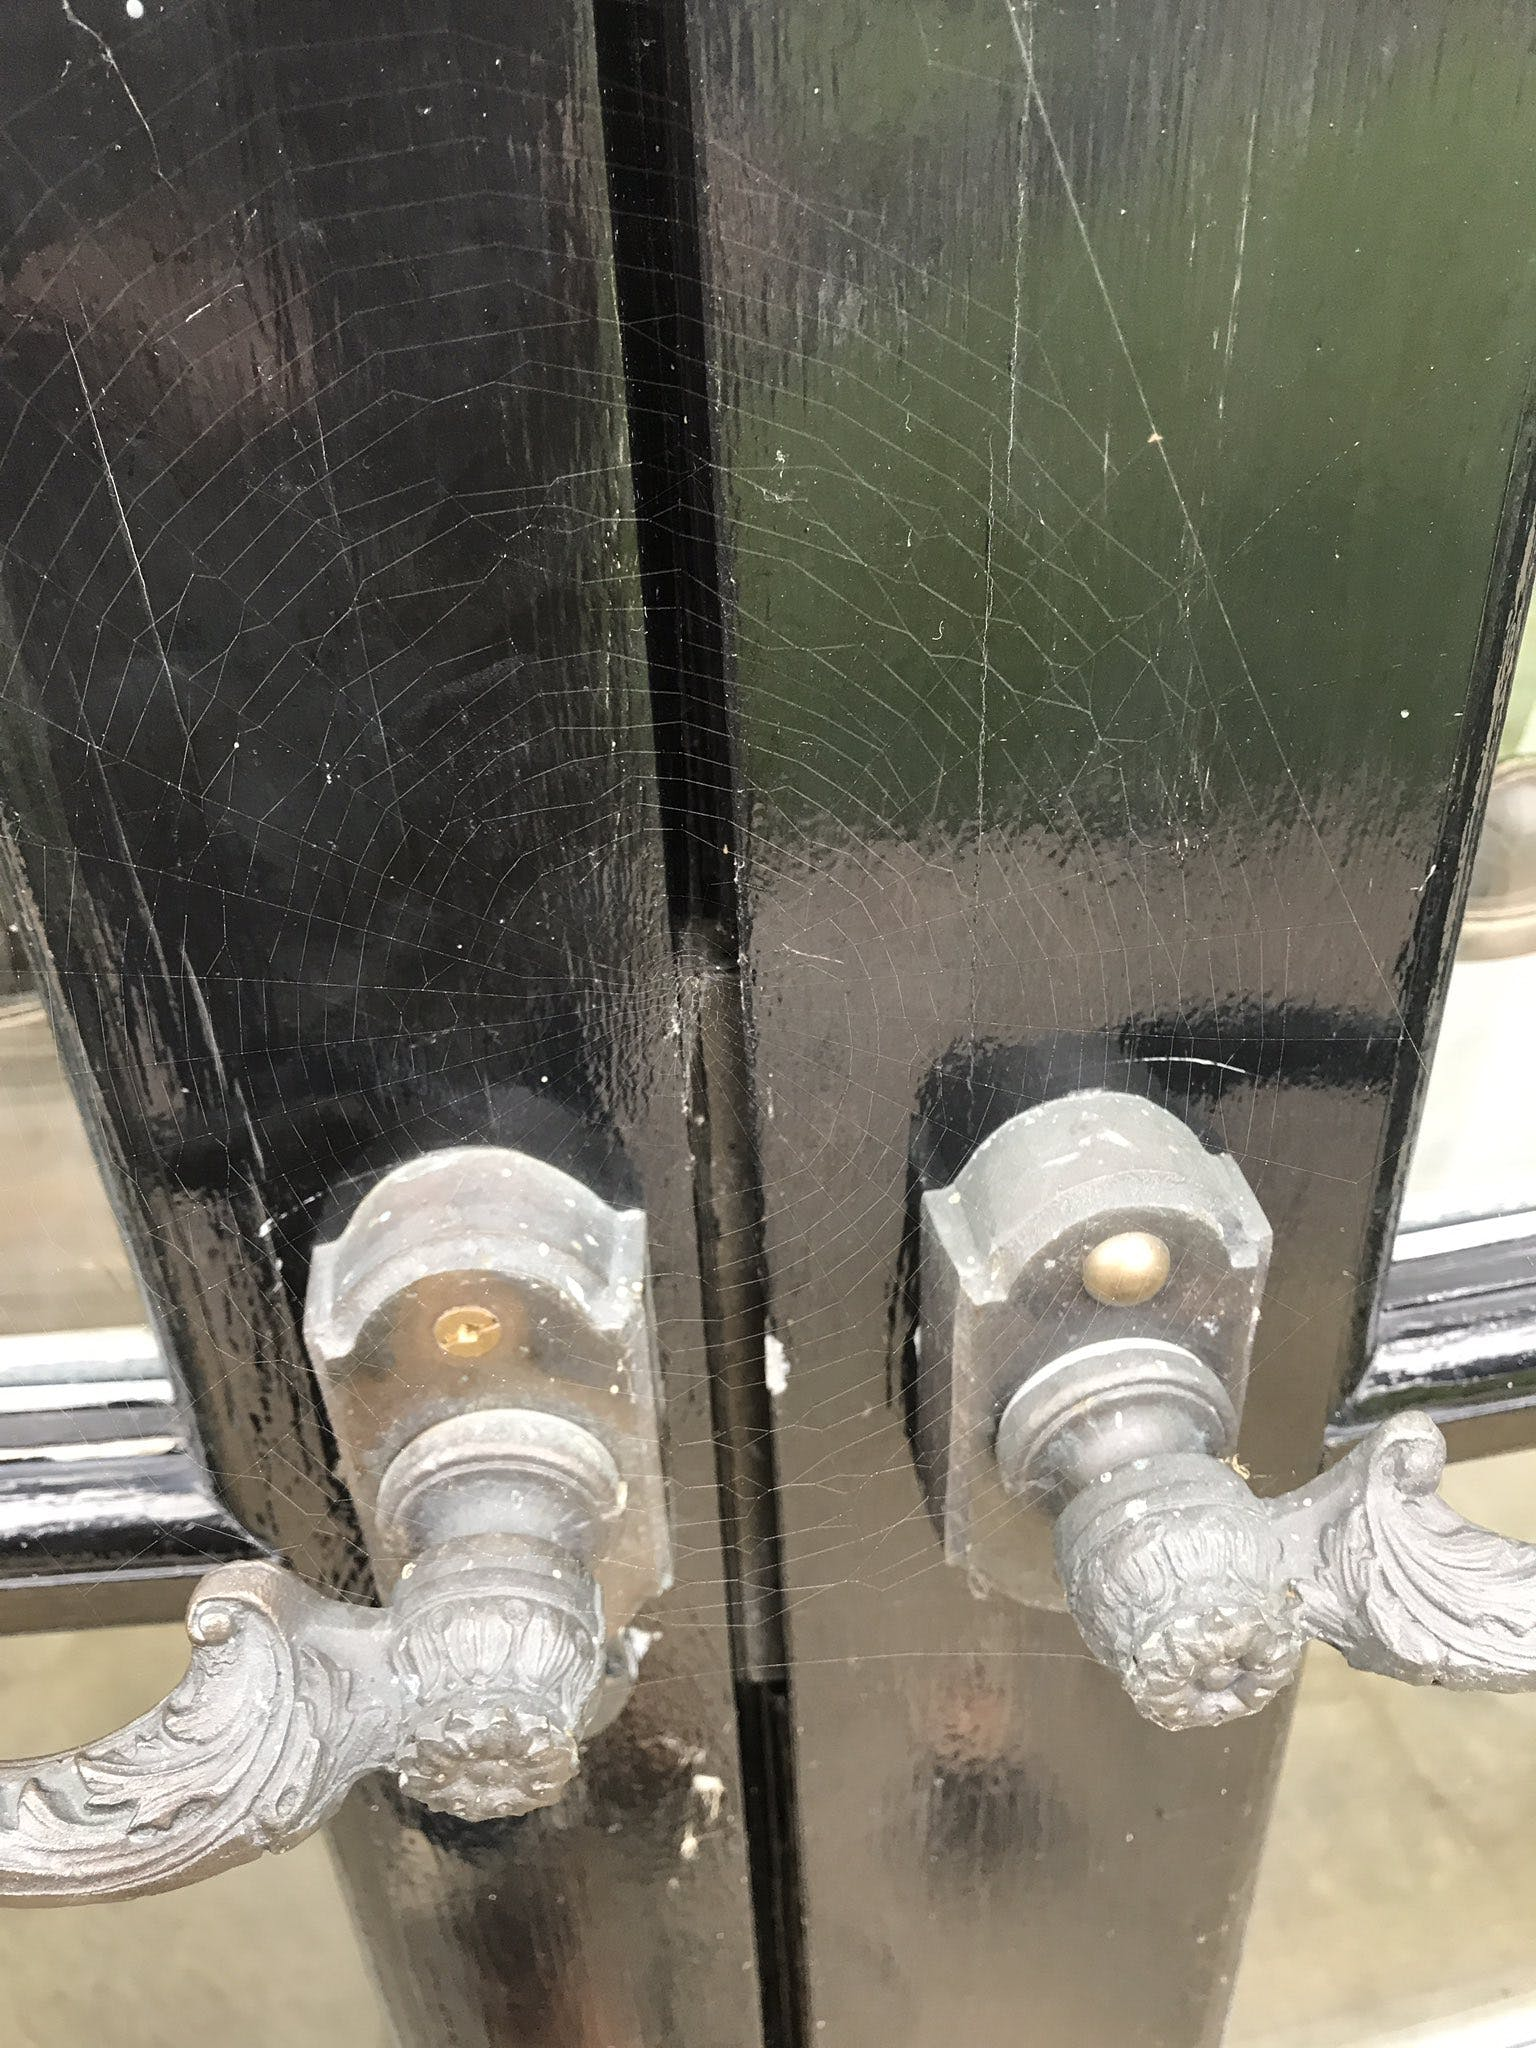 J.K. Rowling's spiderweb-covered door handles